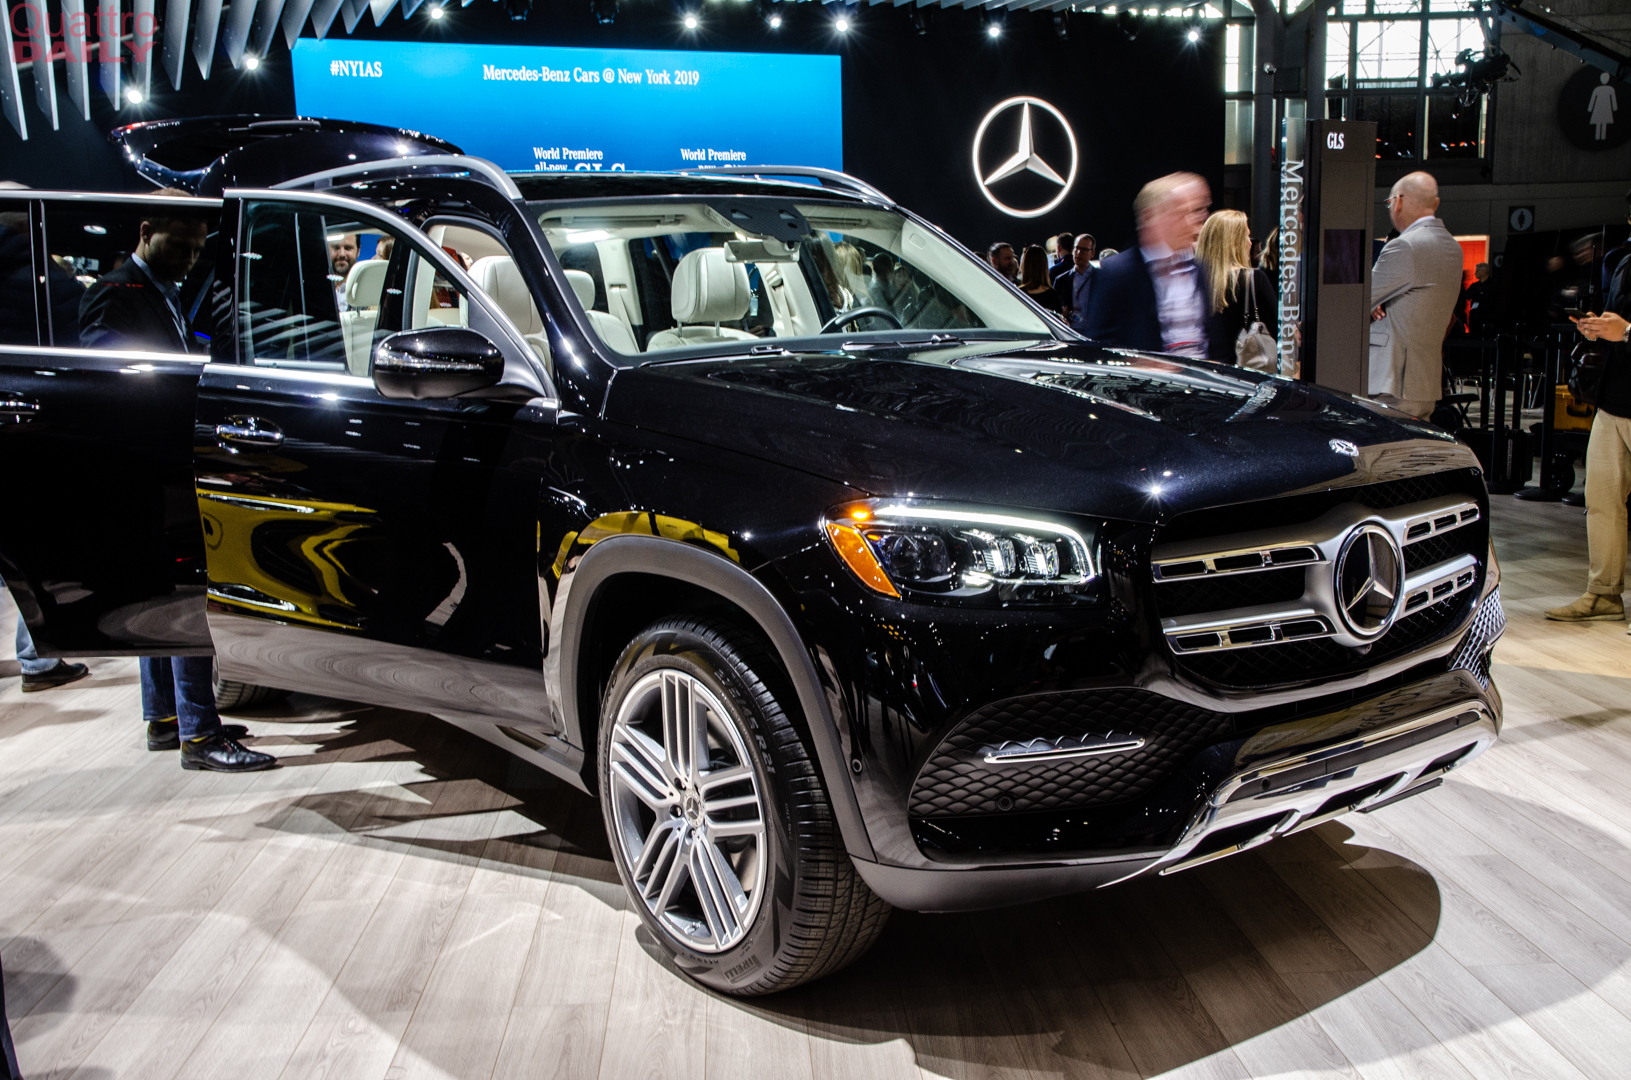 2019 NY Auto Show: Mercedes-Benz GLS-Class shows what Audi's missing